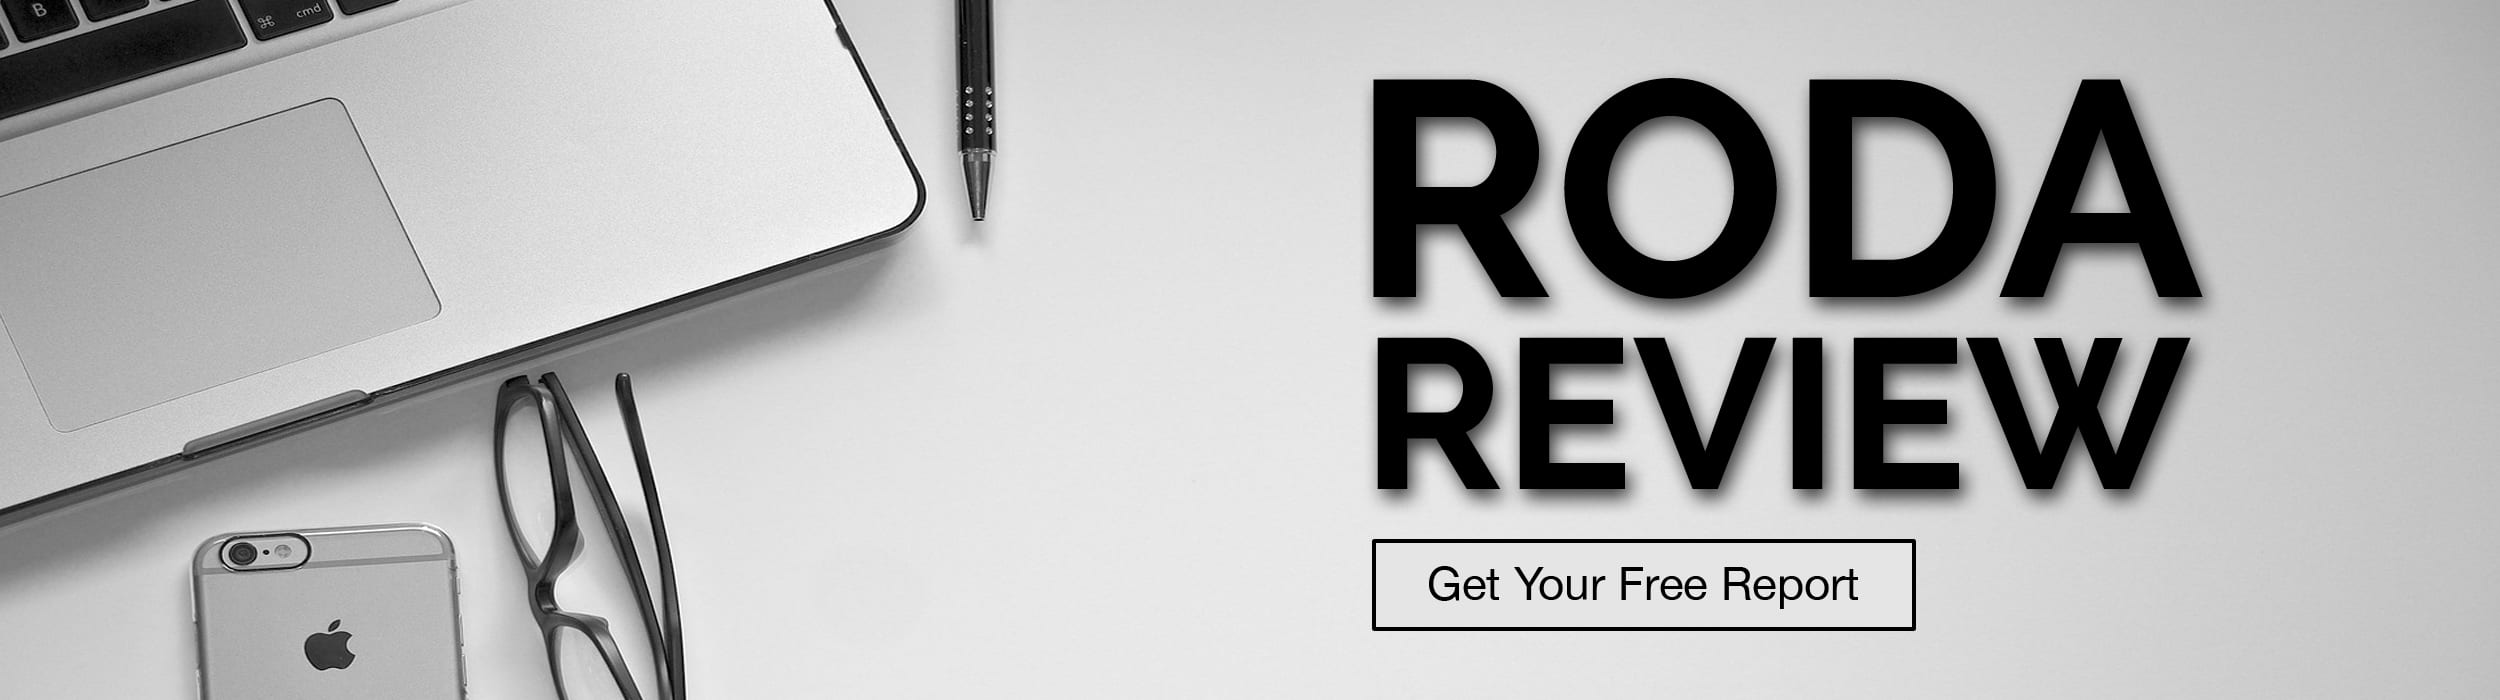 get-your-free-roda-review